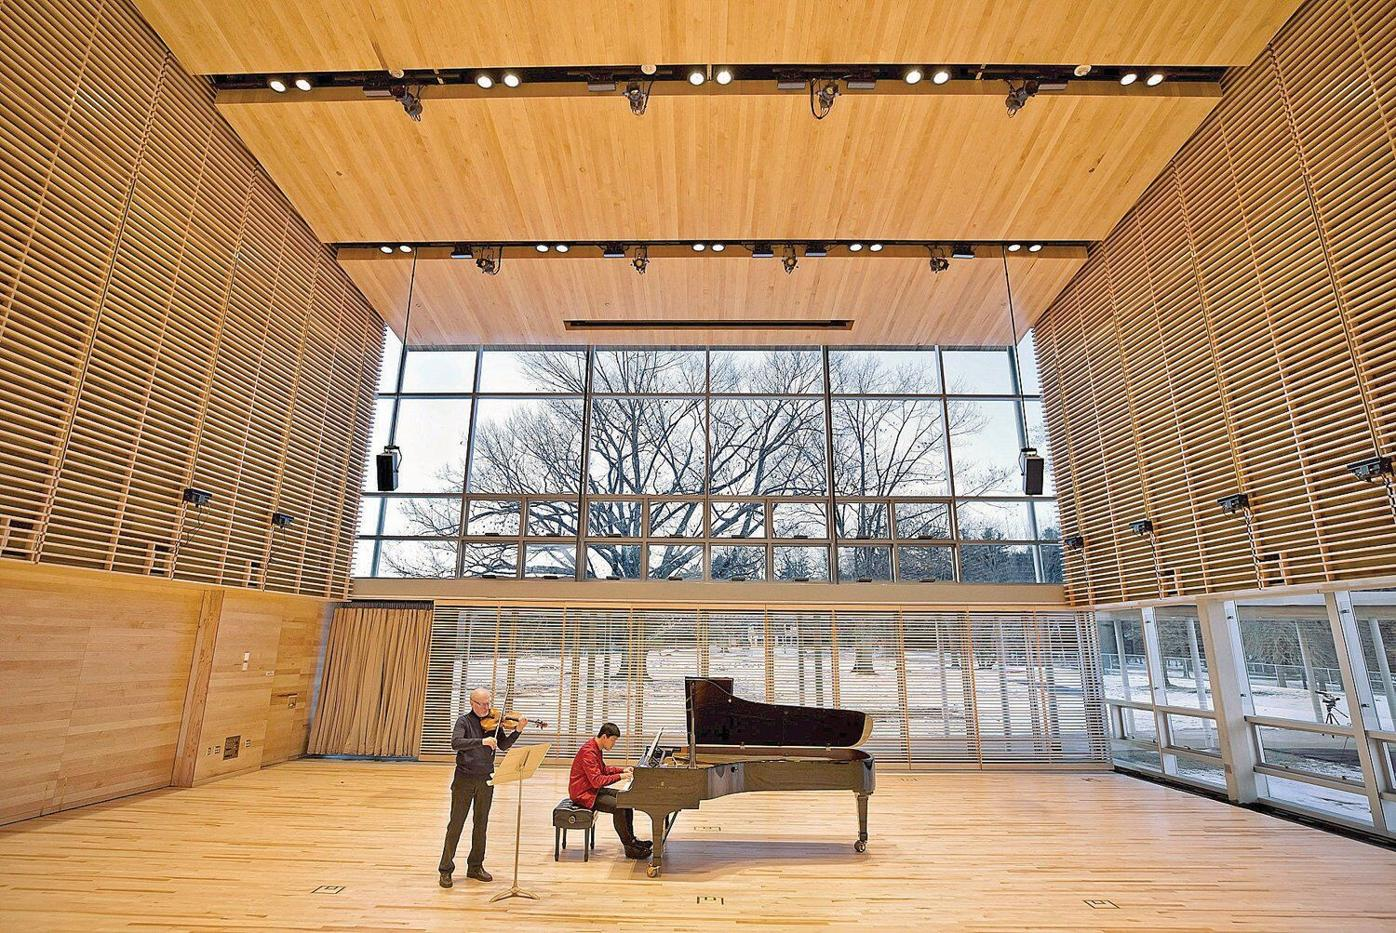 Tanglewood's new off-season: Luring patrons off the couch